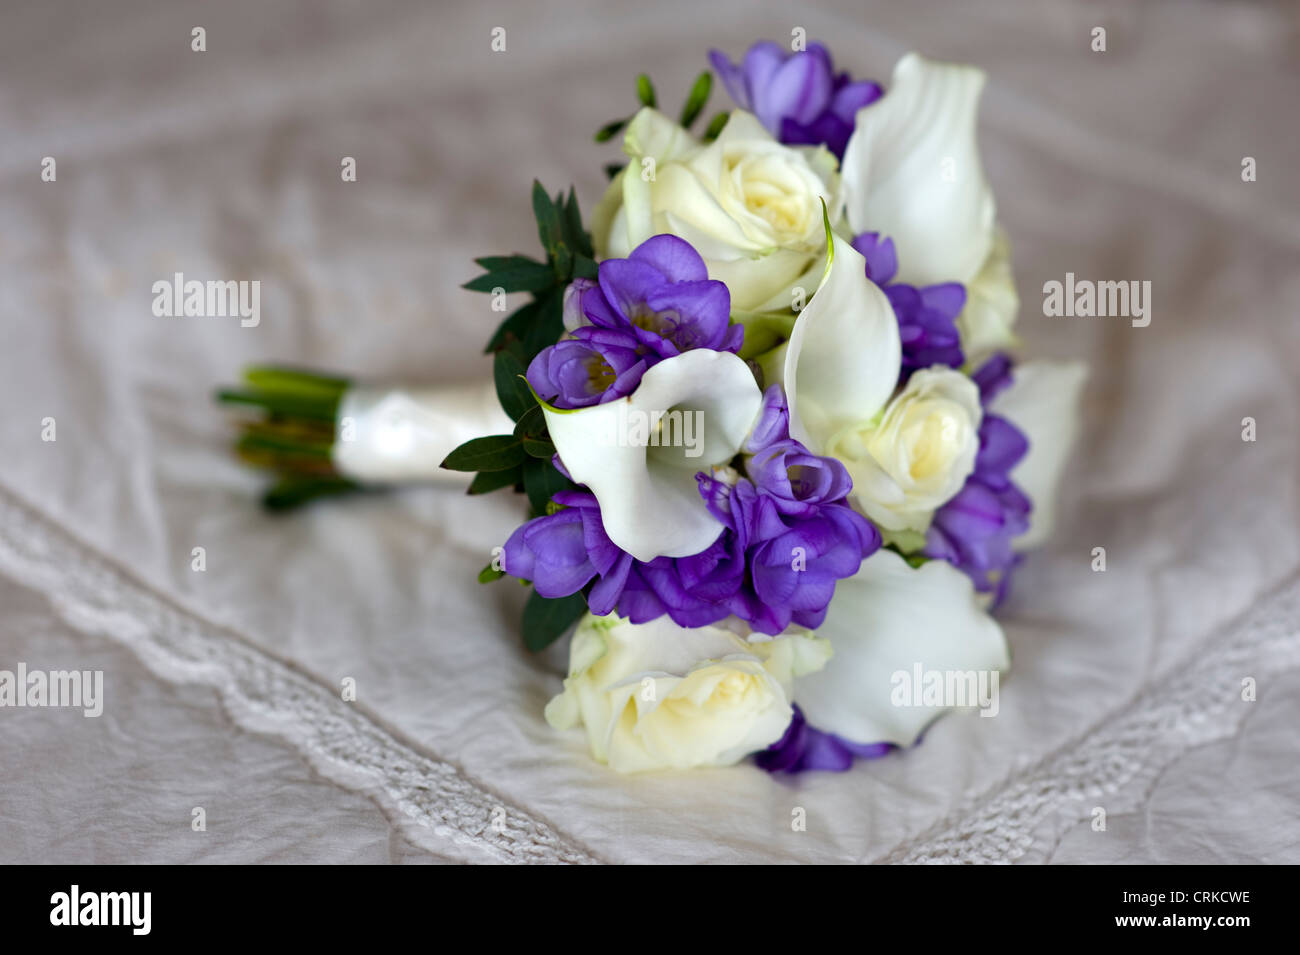 wedding bouquet of freesia, lilies and roses in white and purple ...